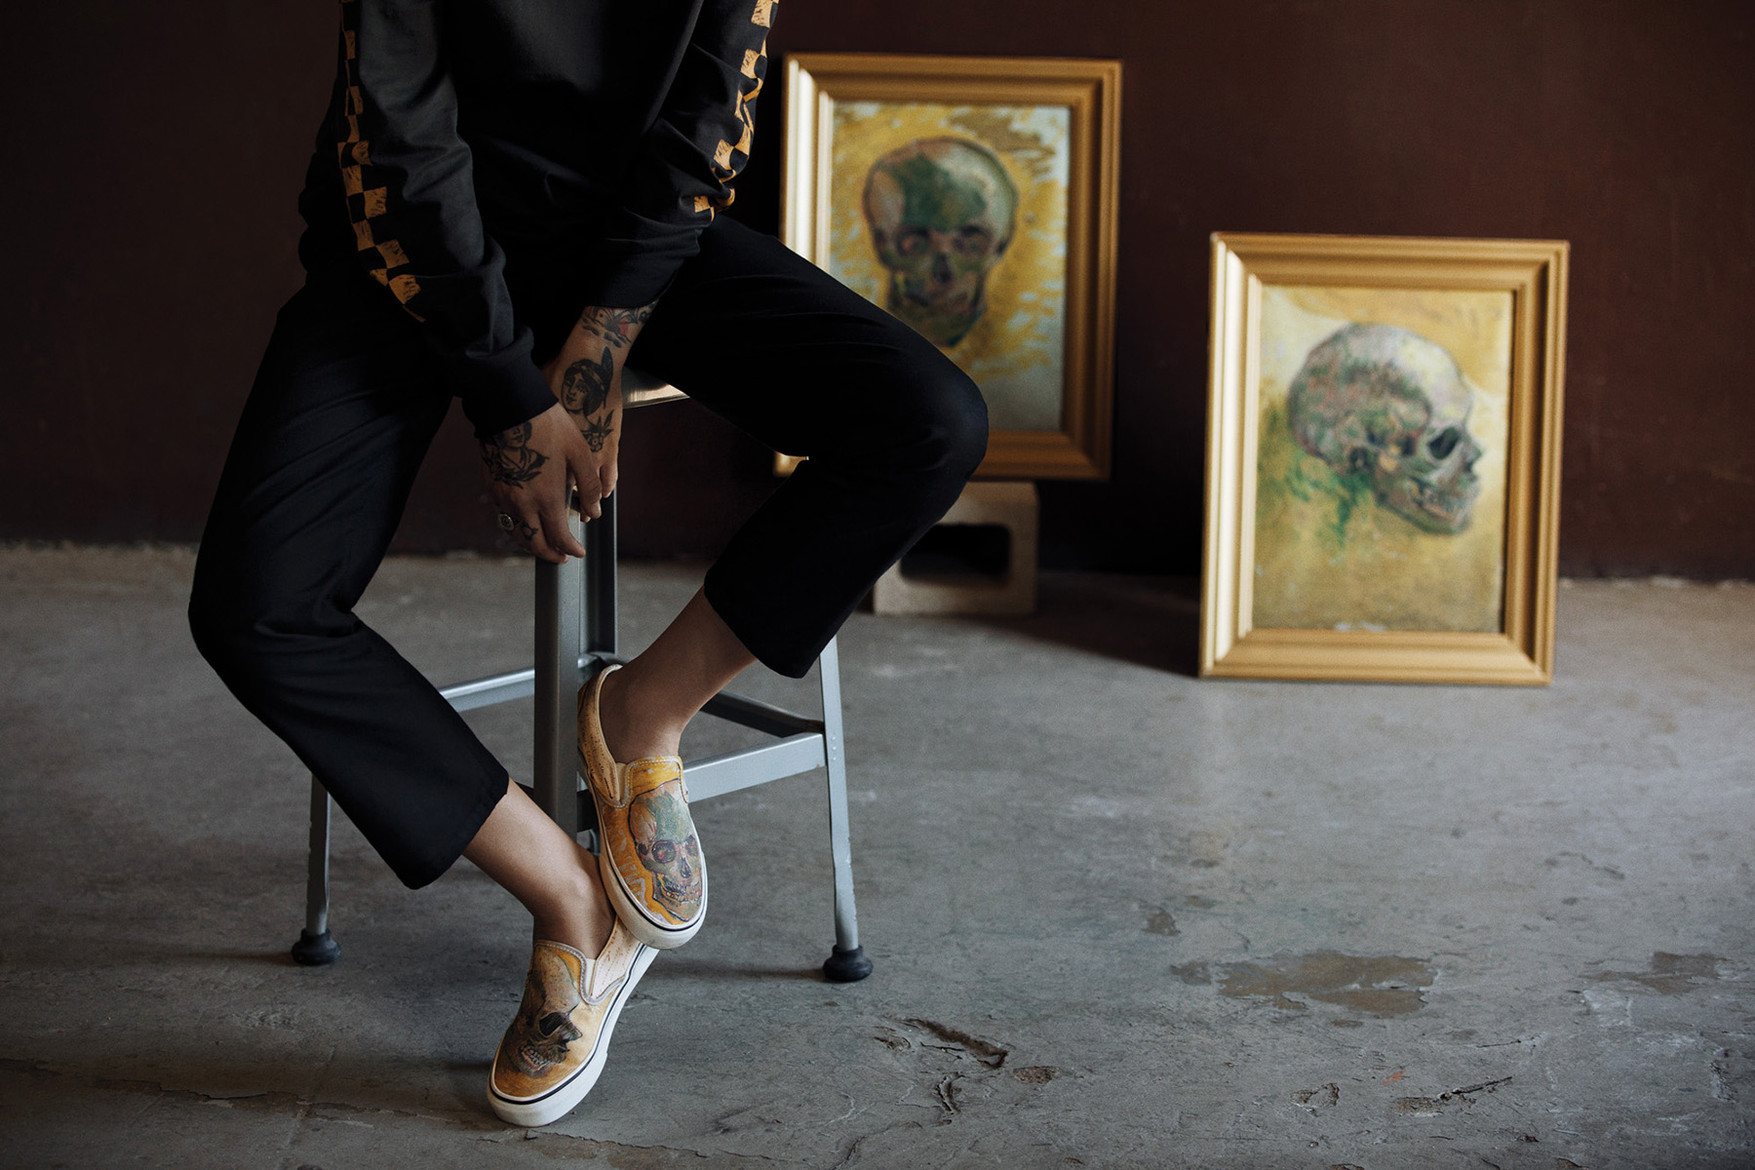 https-hypebeast.comimage201807vincent-van-gogh-museum-vans-lookbook-12